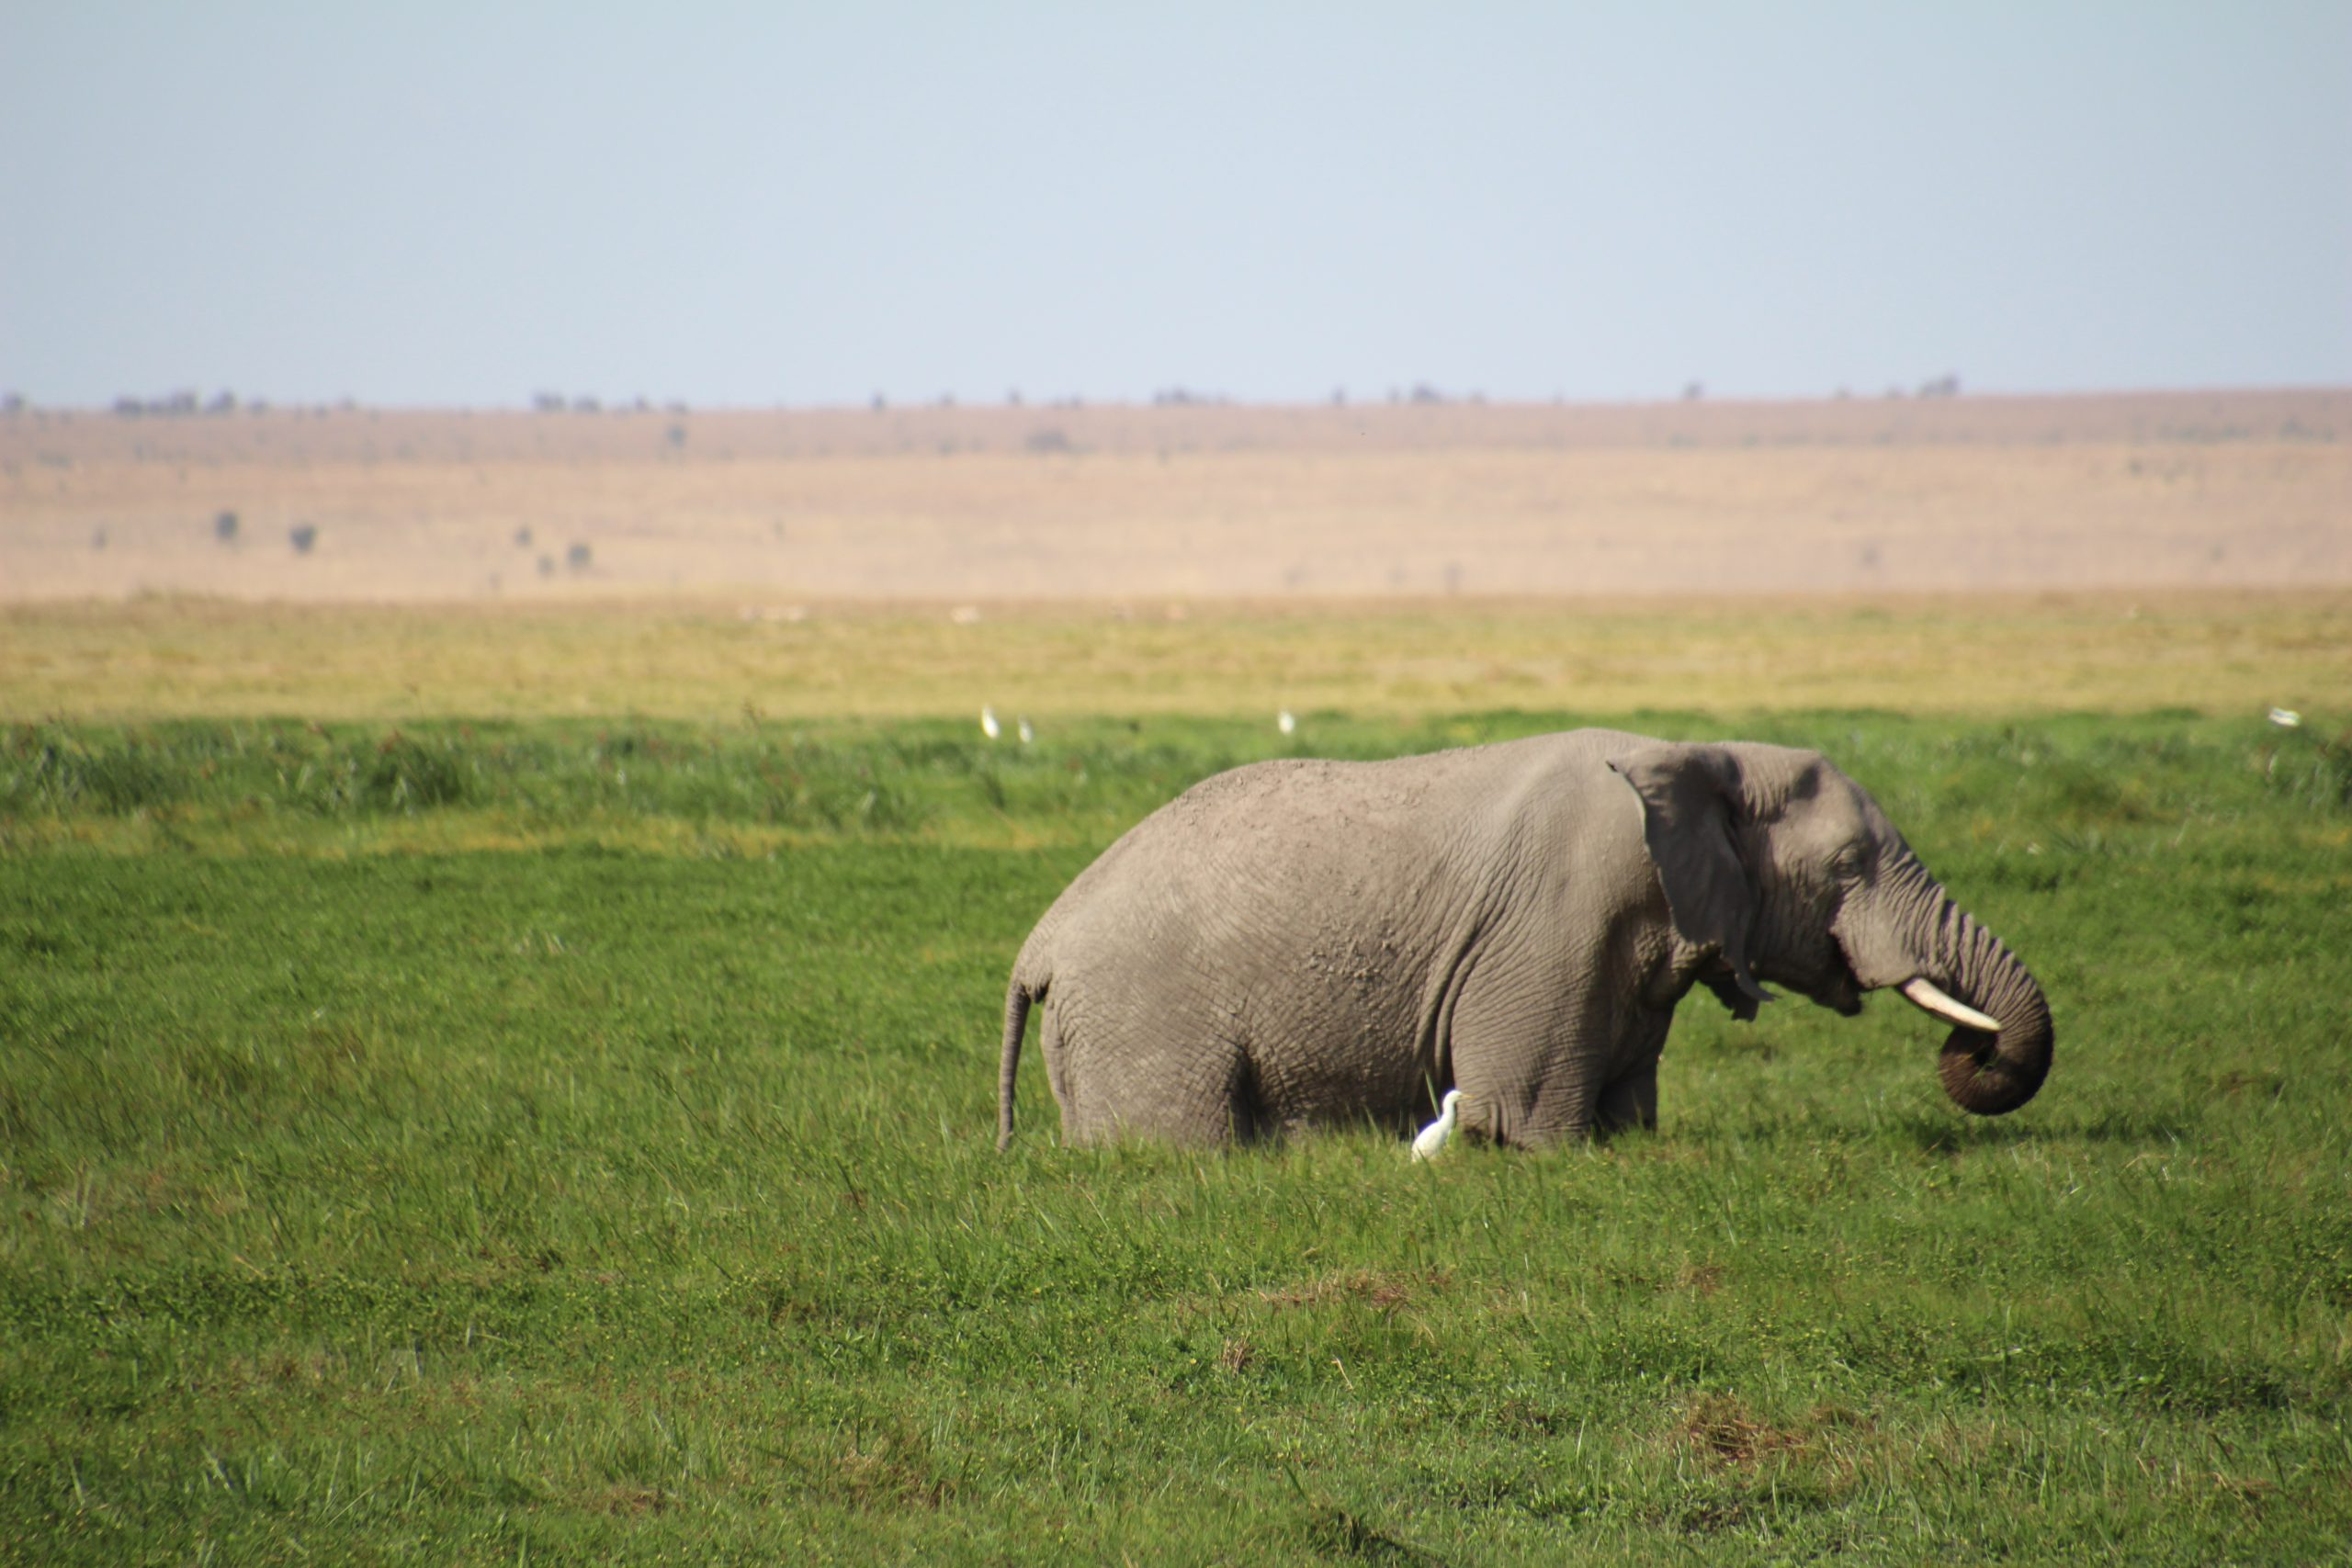 safari-in-kenia-amboseli-national-park_10